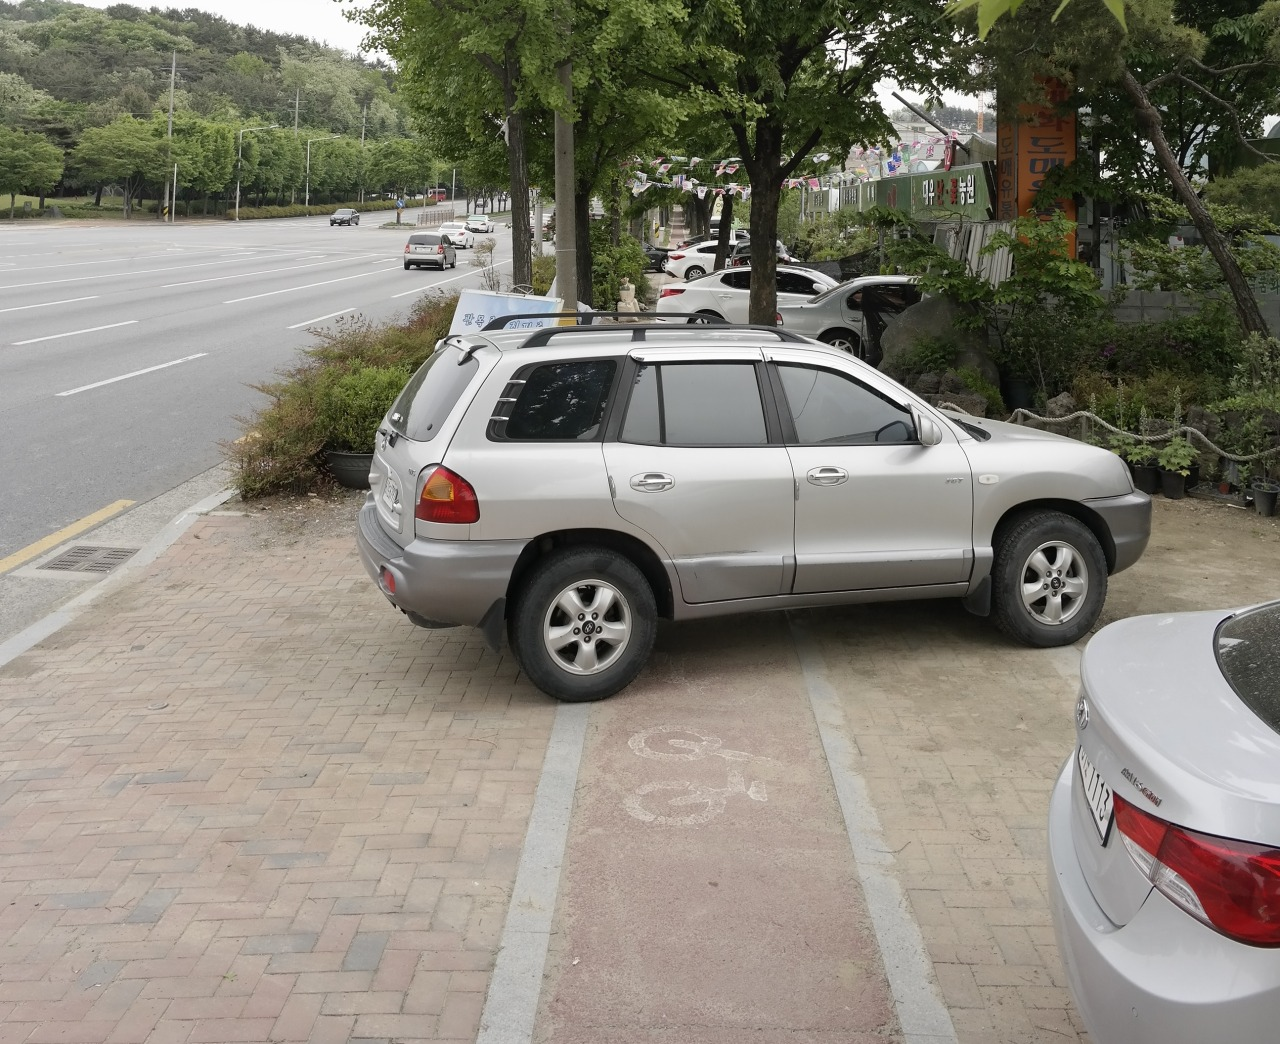 Parking on Sidewalks in Korea